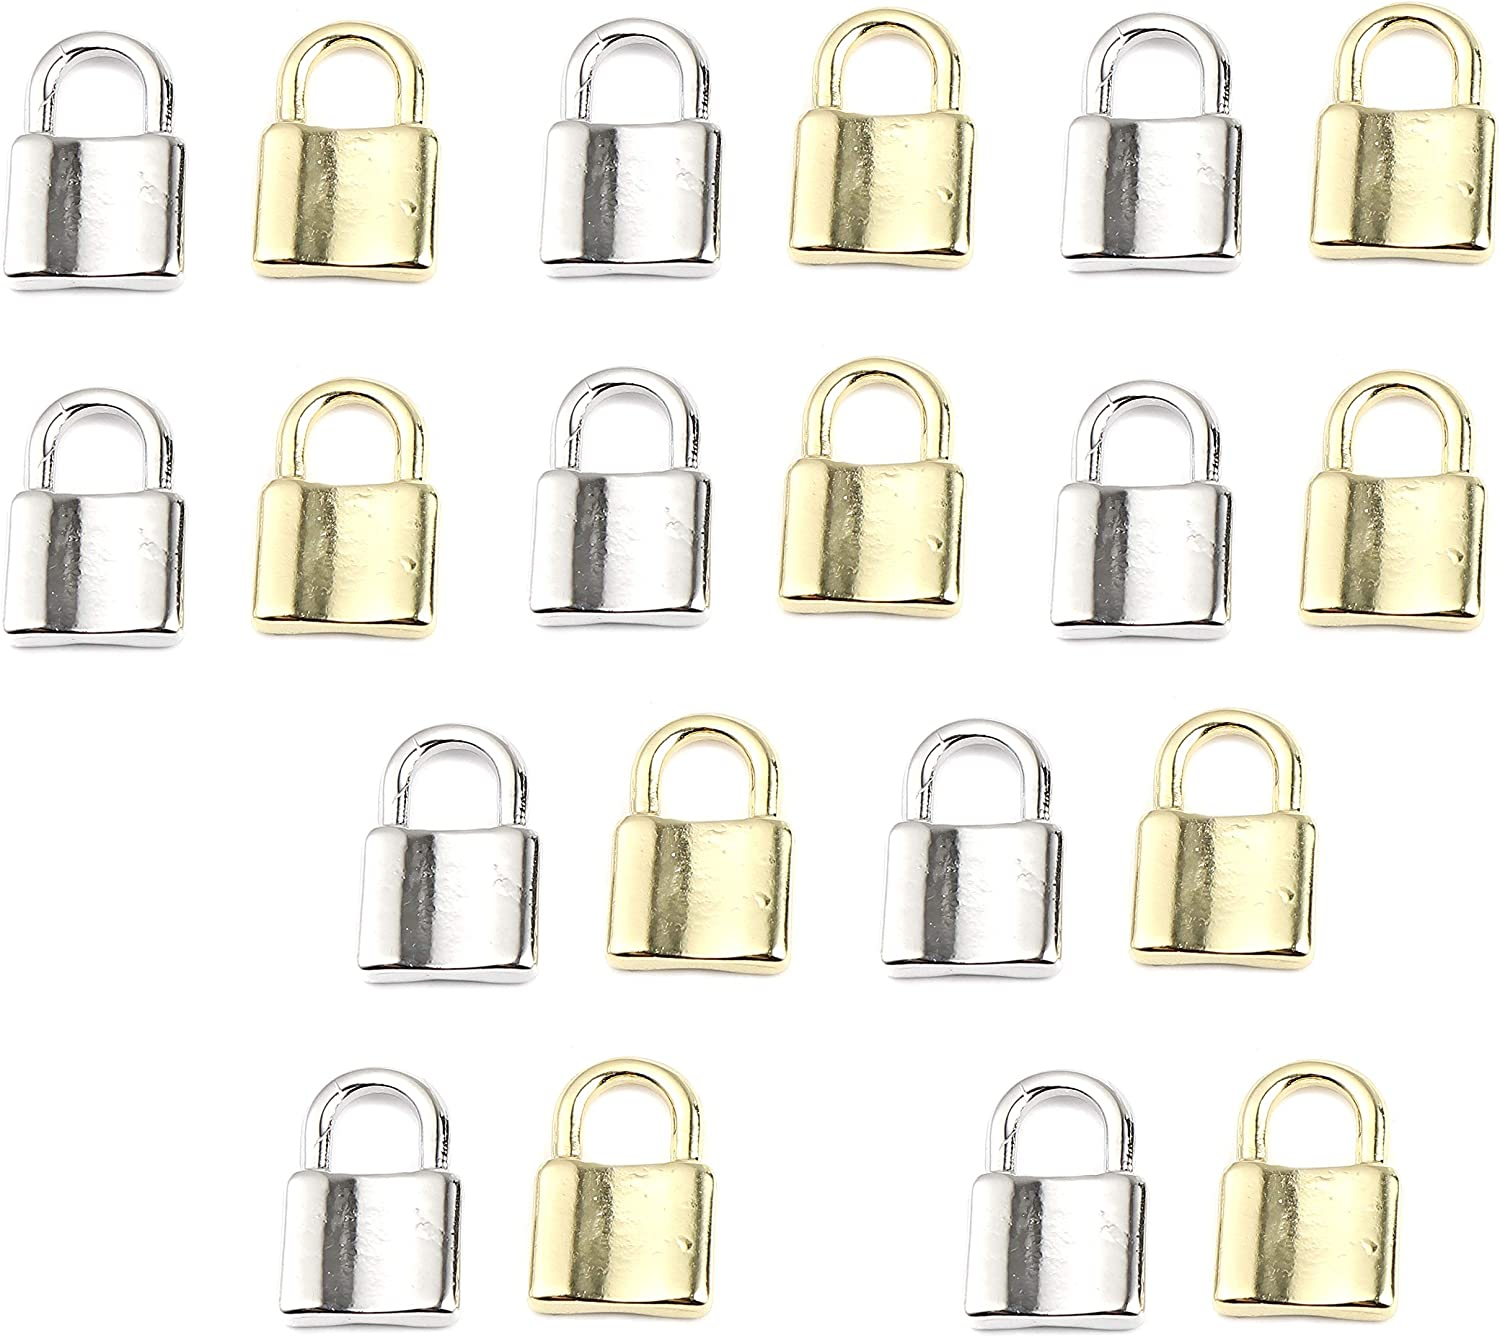 JGFinds Lock Charm Quality inspection Pendants 20 Pack 3 online shop 4 Silver Gold in Inch and